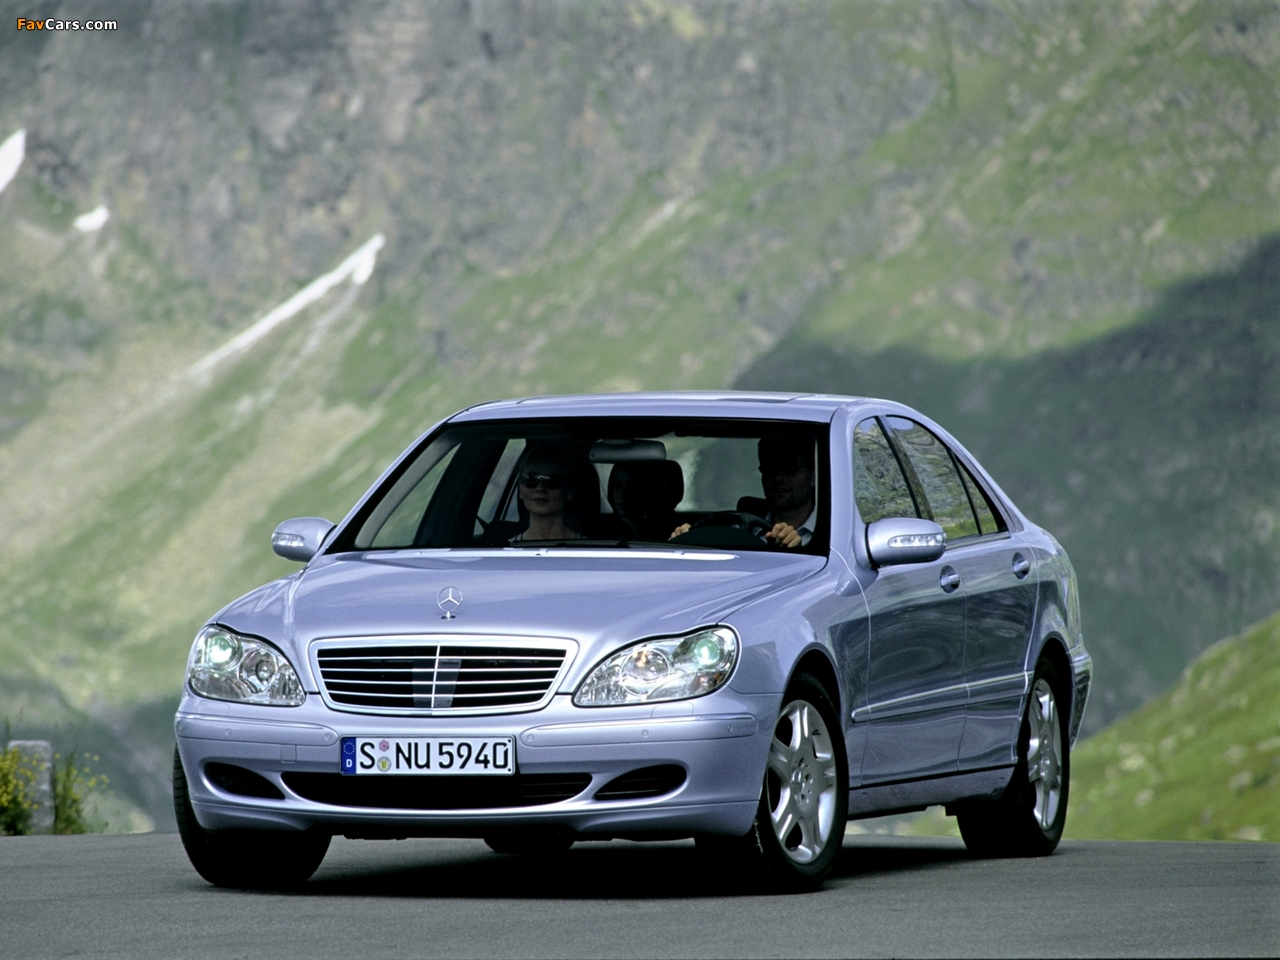 Mercedes-Benz S 500 4MATIC (W220) 2002–06 pictures (1280 x 960)